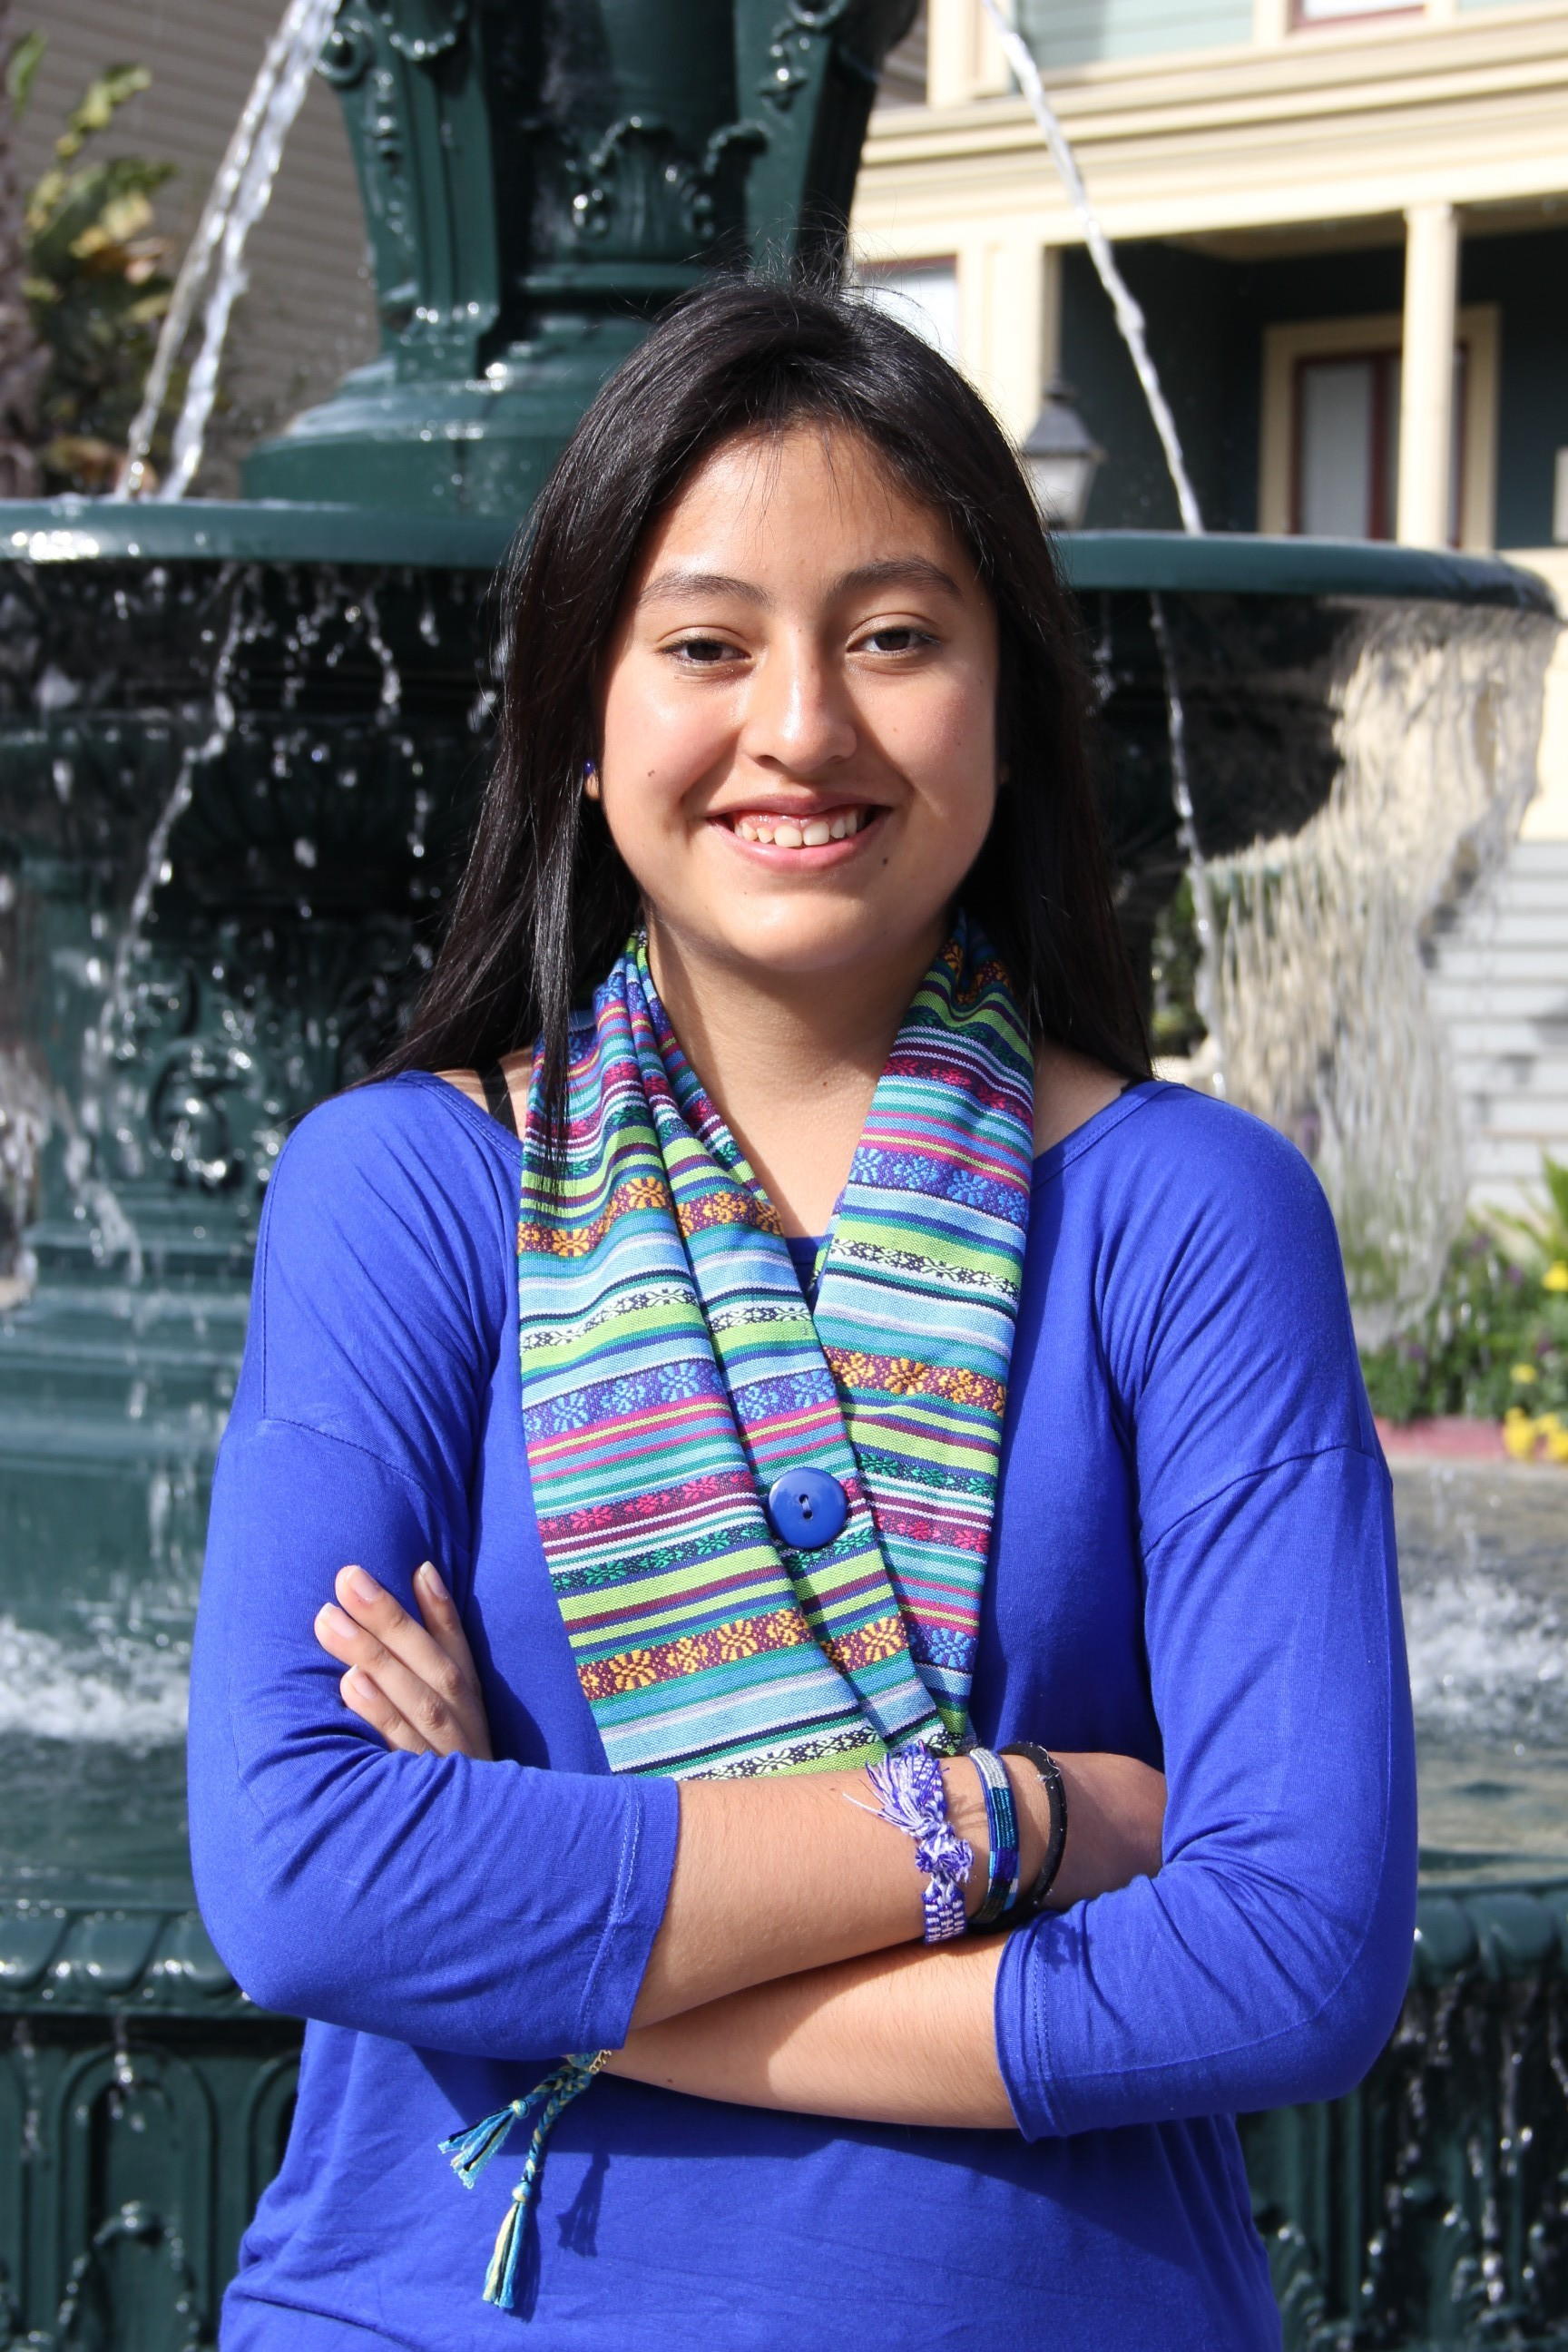 Alejandra, a Rise Up girl leader poses with her arms crossed and smiles outside a building with a fountain in front of it.